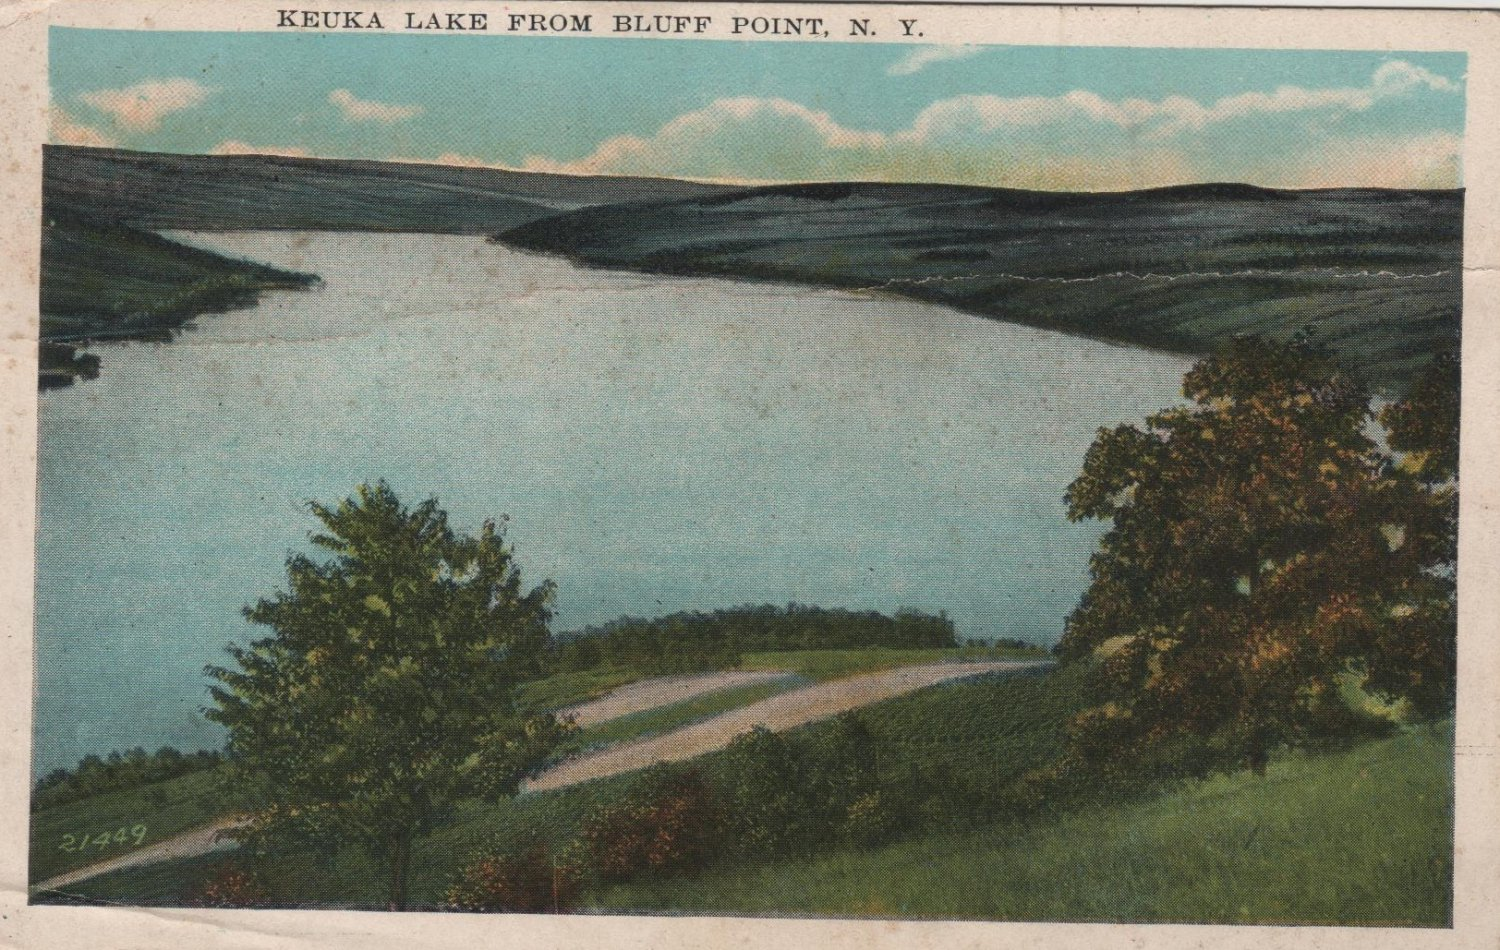 New York Landscape Postcard, Keuka Lake from Bluff Point, Full Color c.1927